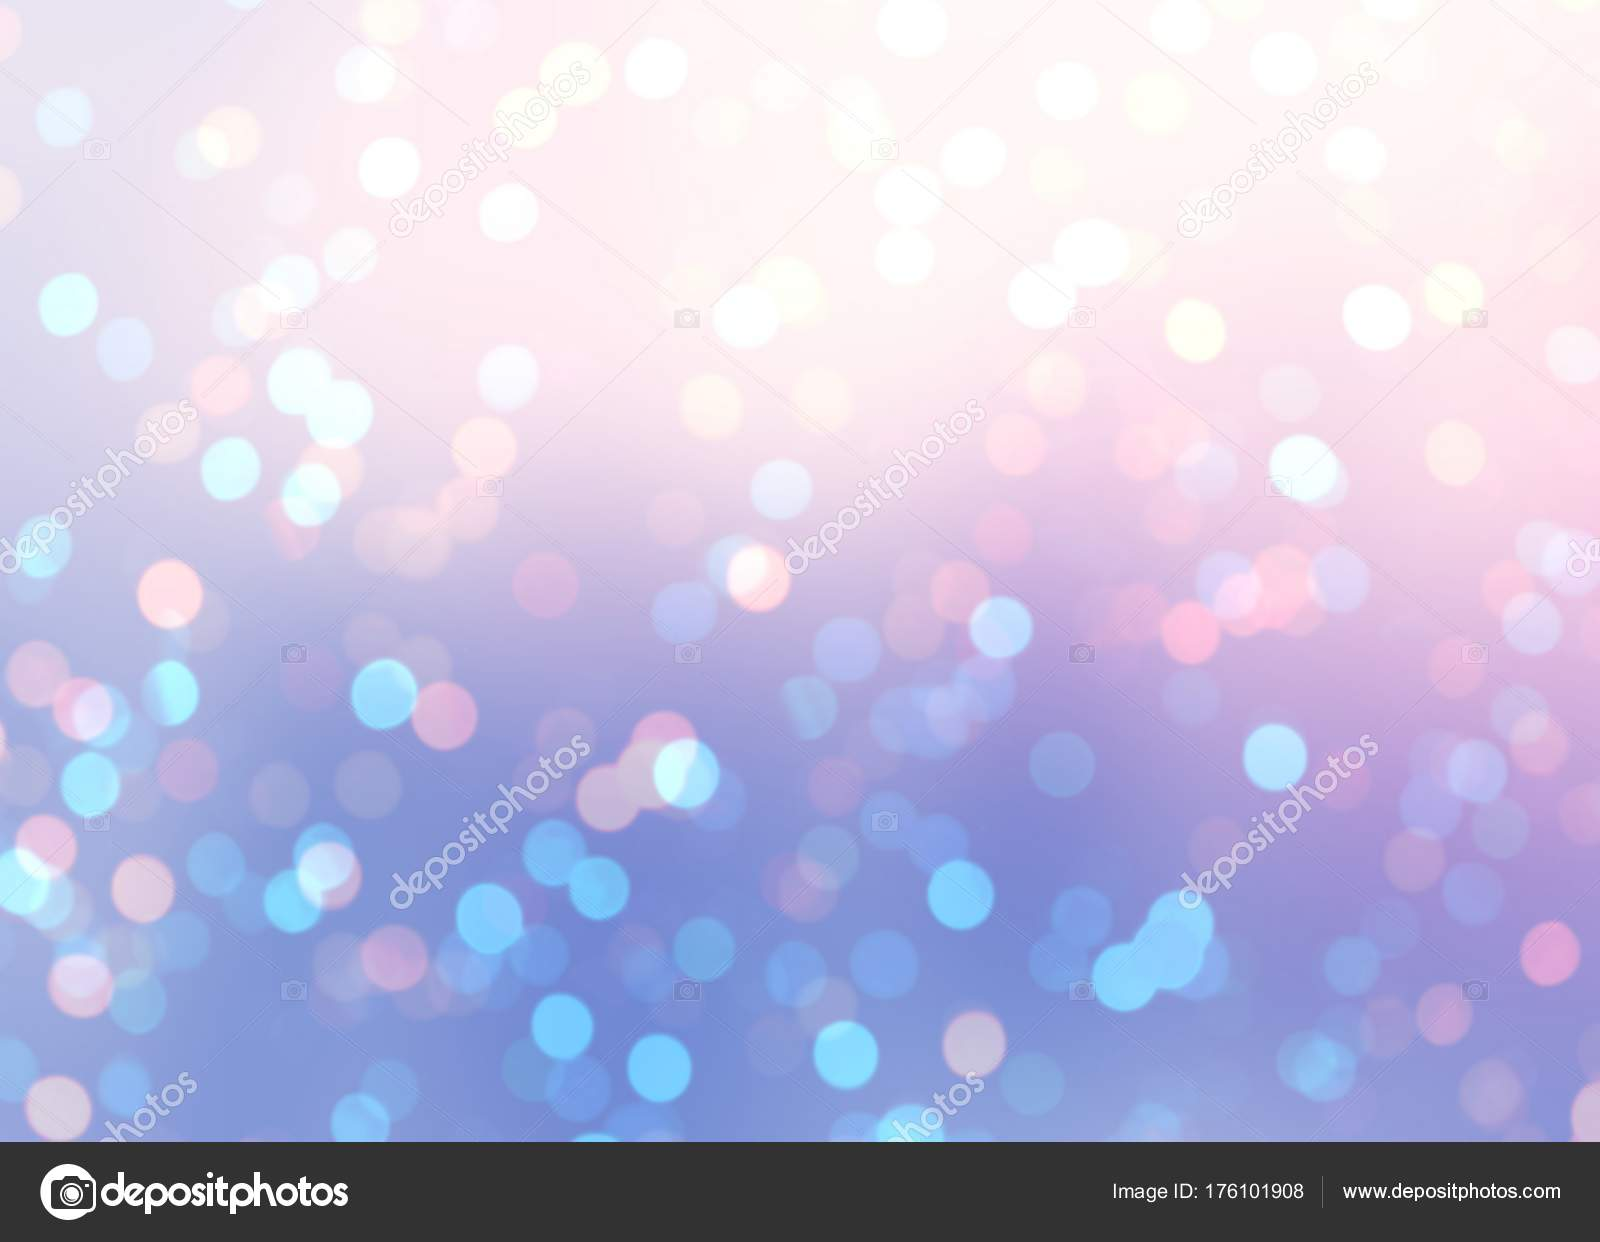 pink blue glitter magical background empty new year illustration